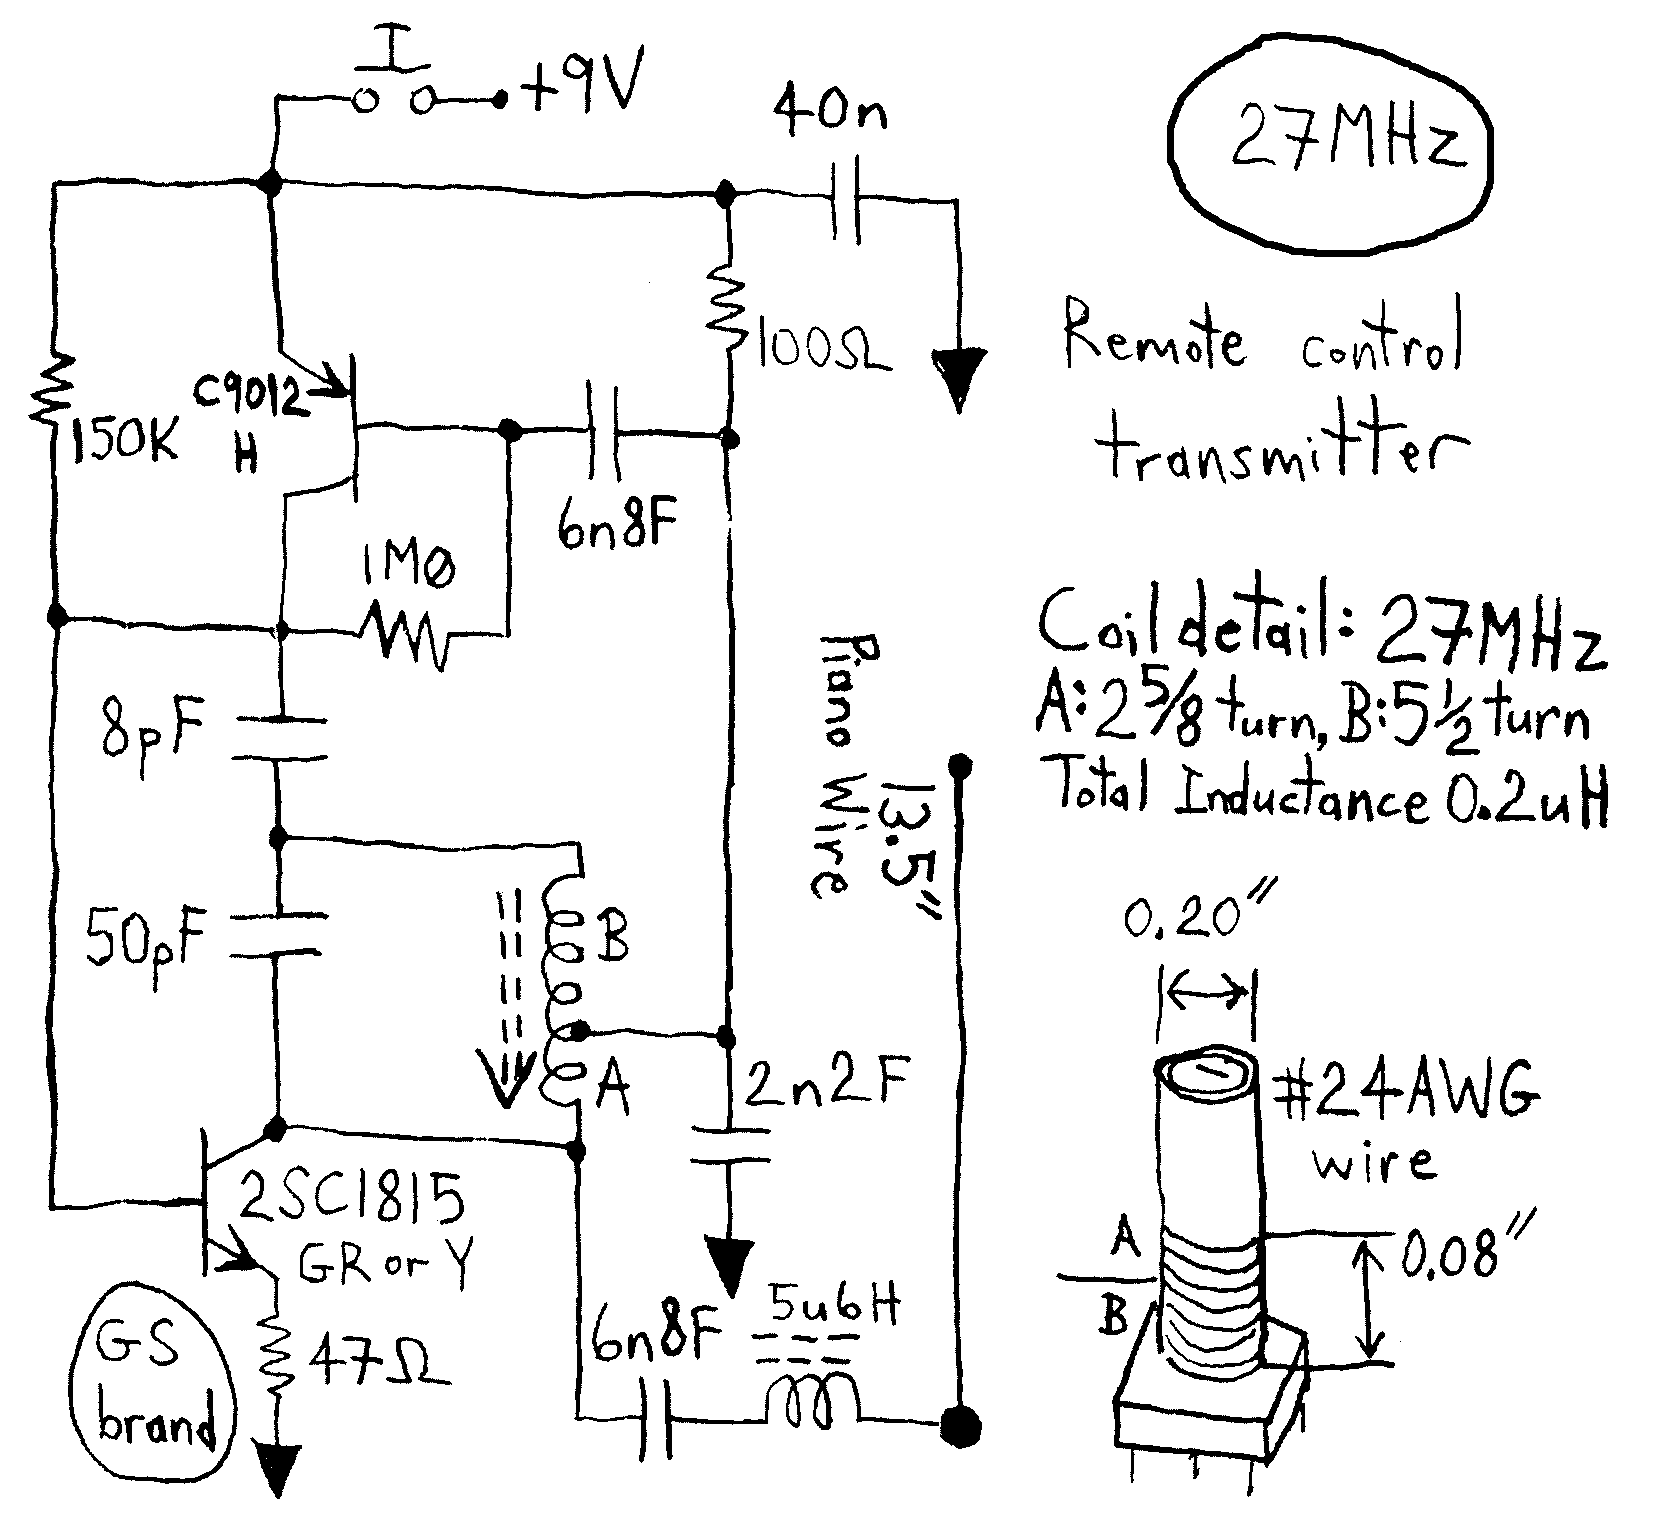 Simple Rc Cars Single Channel Transmitters And Super Regenerative Car Wiring Schematic Note That The 6 Volt Supply Which Consists Of 4 Aa Cells Is Center Tapped Feeds A 3 Motor Shown At 27mhz 40mhz 49mhz Circuit